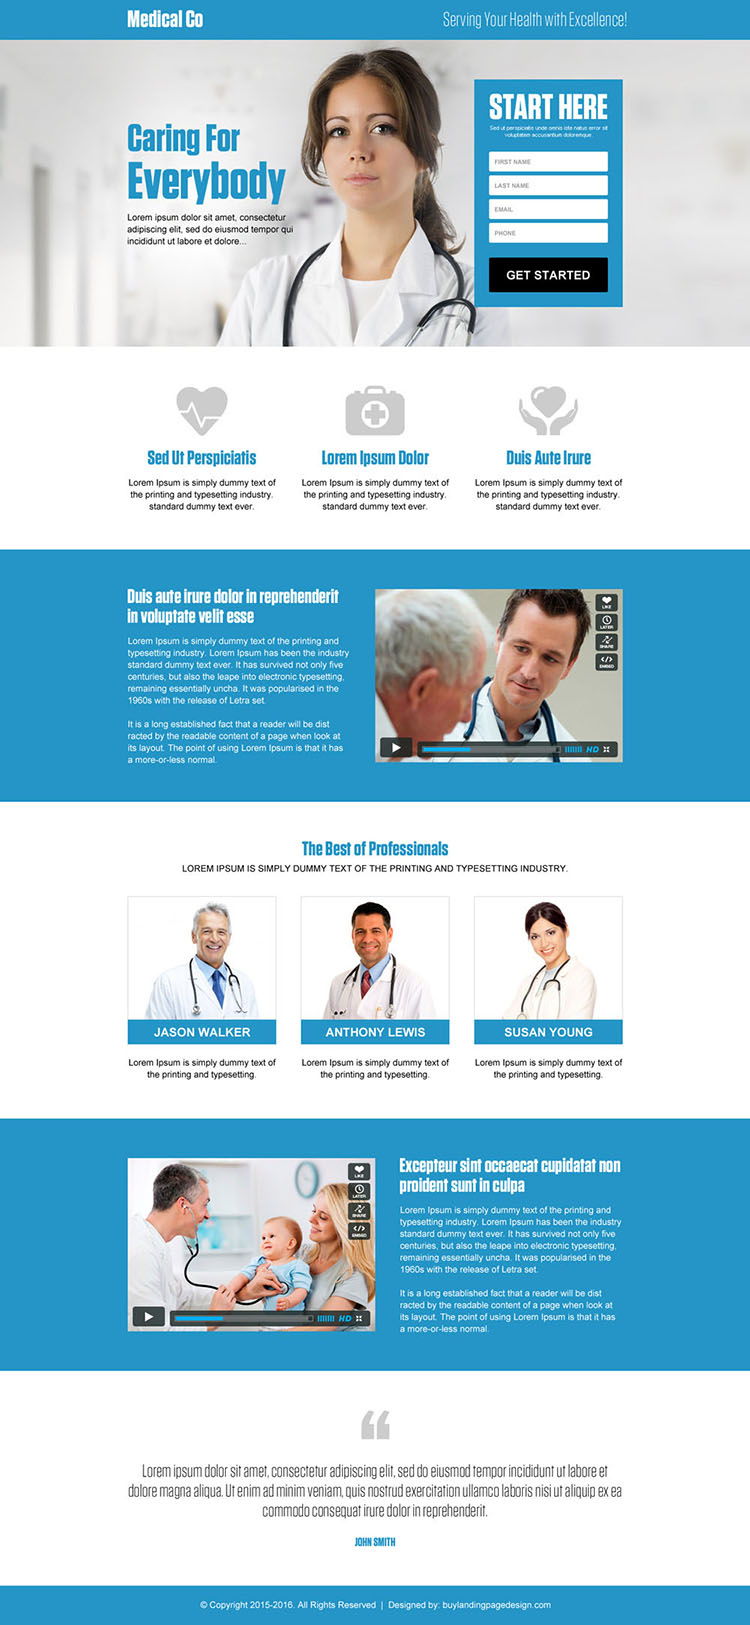 best medical company lead generating responsive landing page design